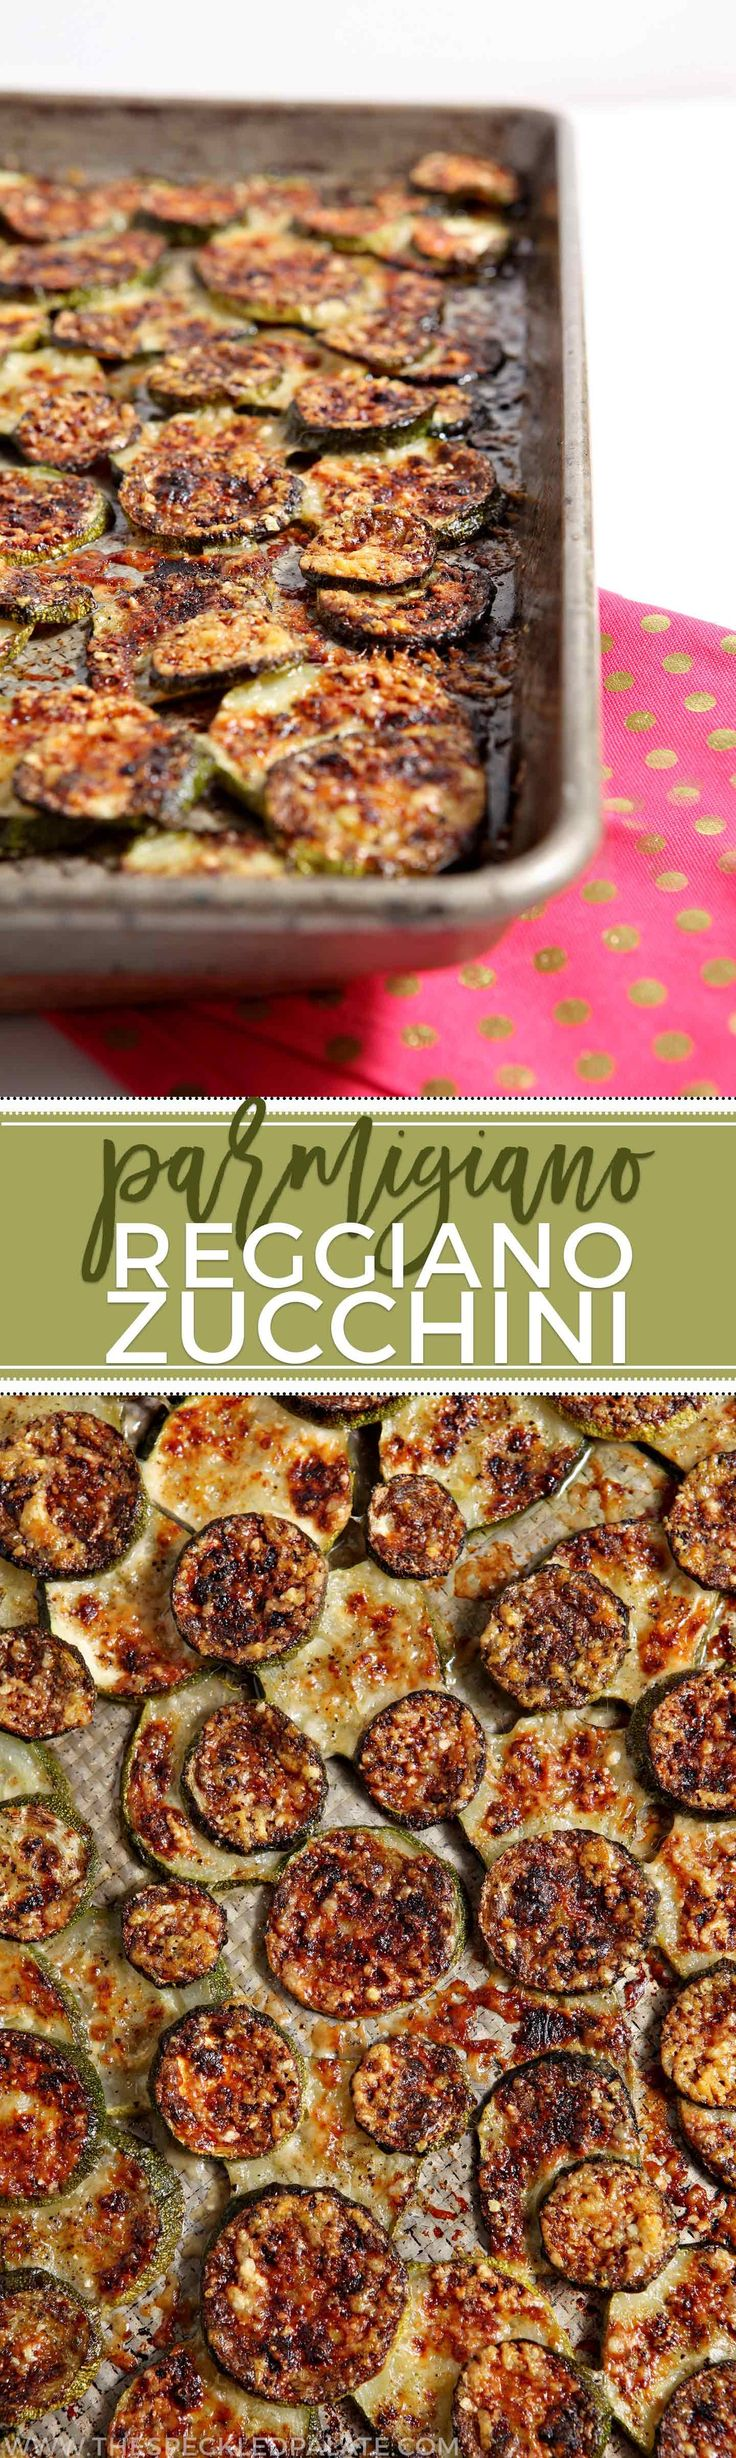 Parmigiano Reggiano Zucchini is a brilliant way to serve zucchini in the summer. With its melt-in-your-mouth richness, this is an all-time favorite summer side. #recipe #zucchini